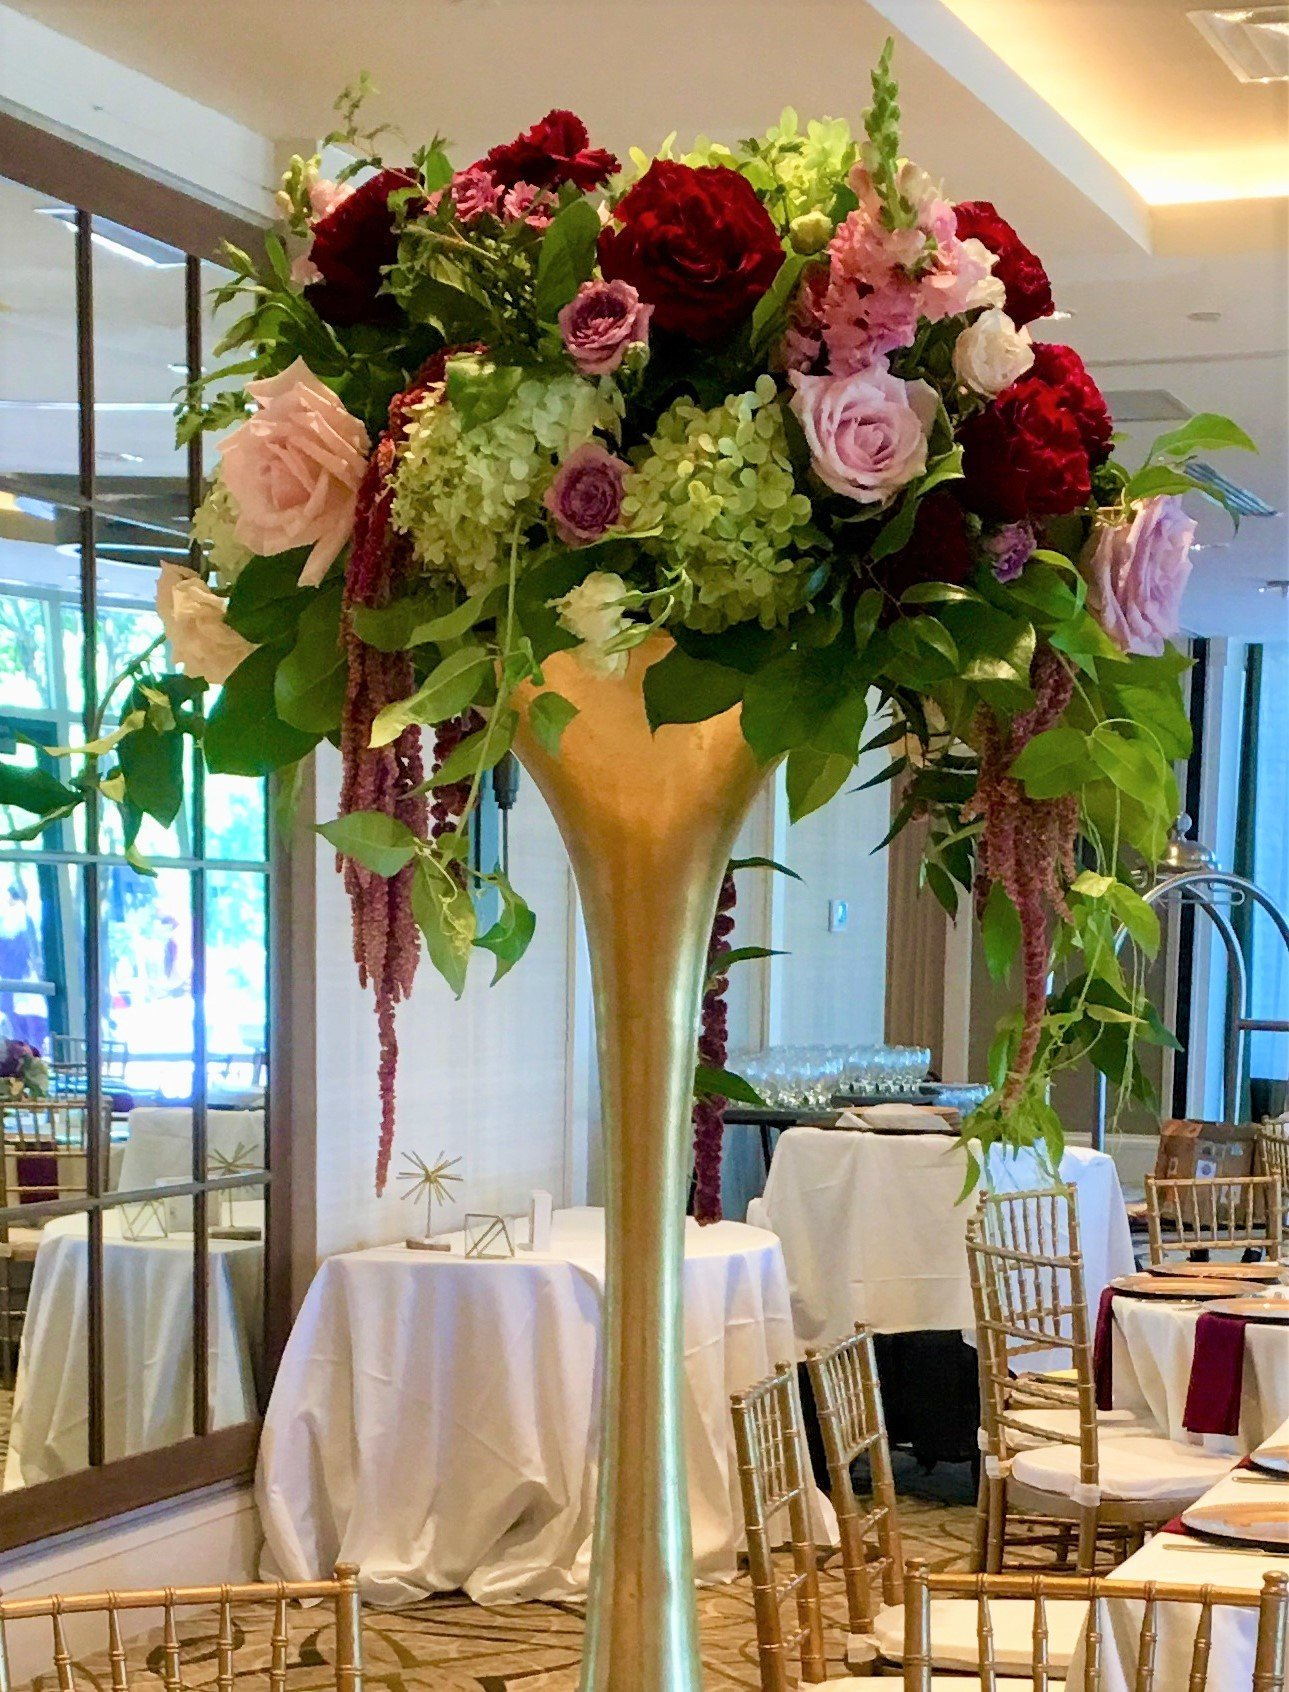 Elevated floral arrangement with roses and hydrangeas